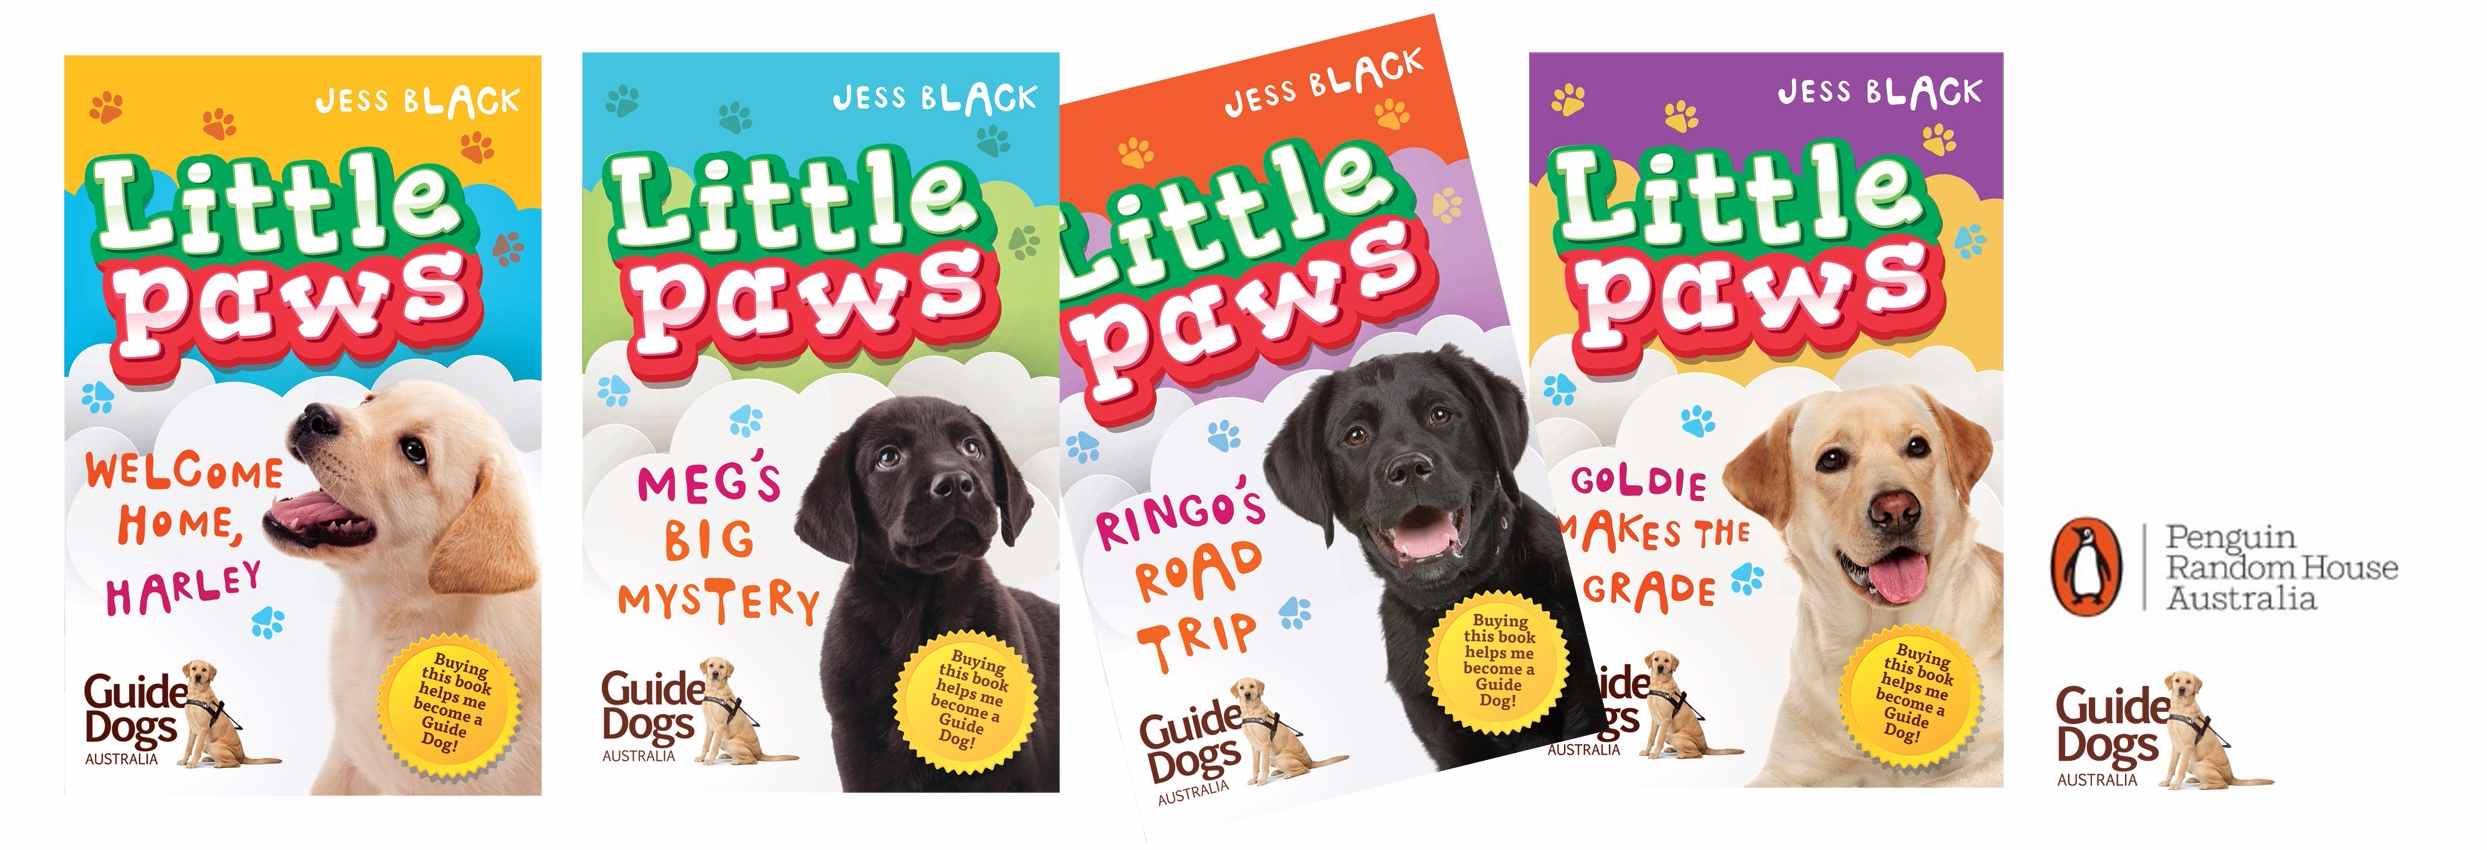 Little Paws release 01